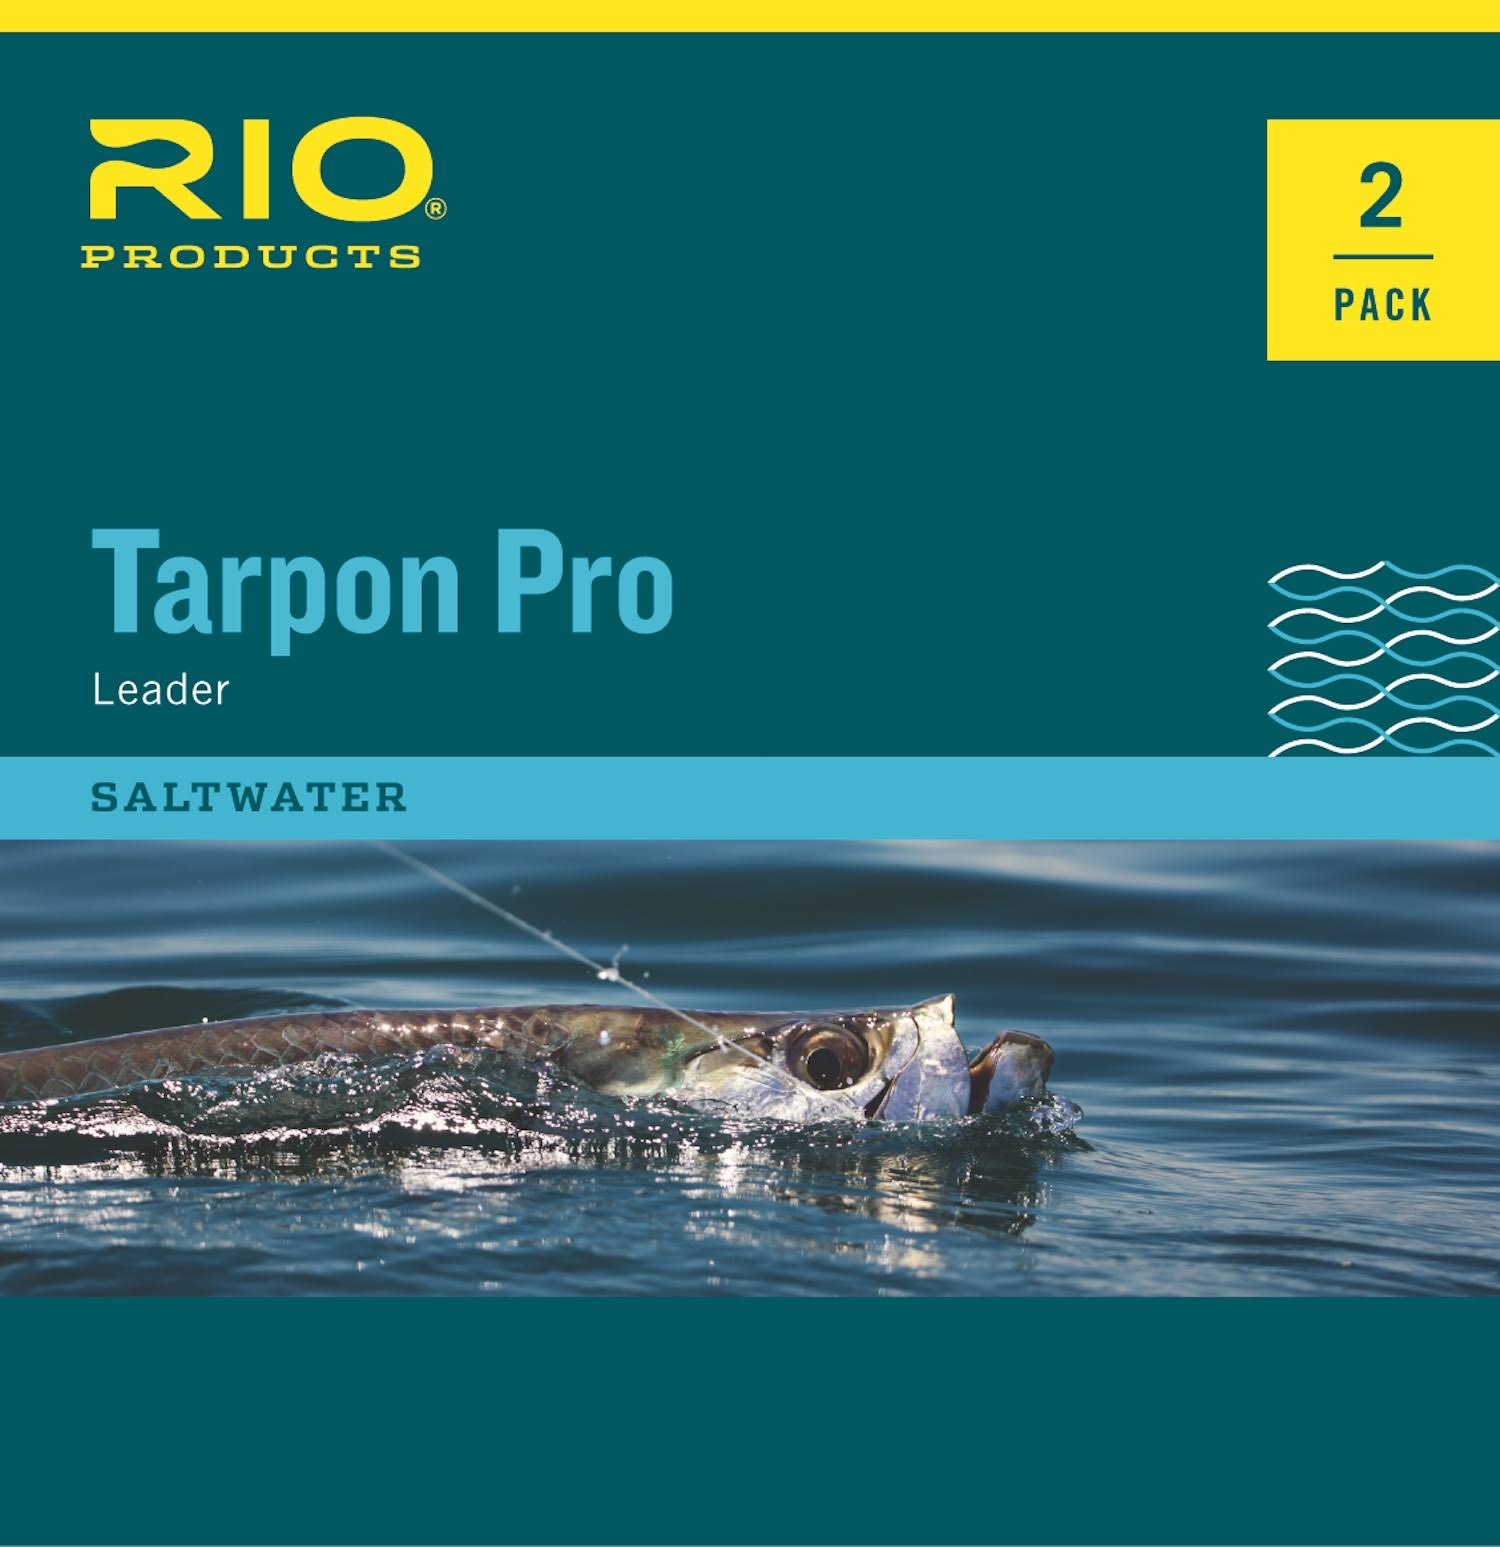 Rio Pro Tarpon Tapered Fluorocarbon Shock Fly Fishing Leaders - 2pk